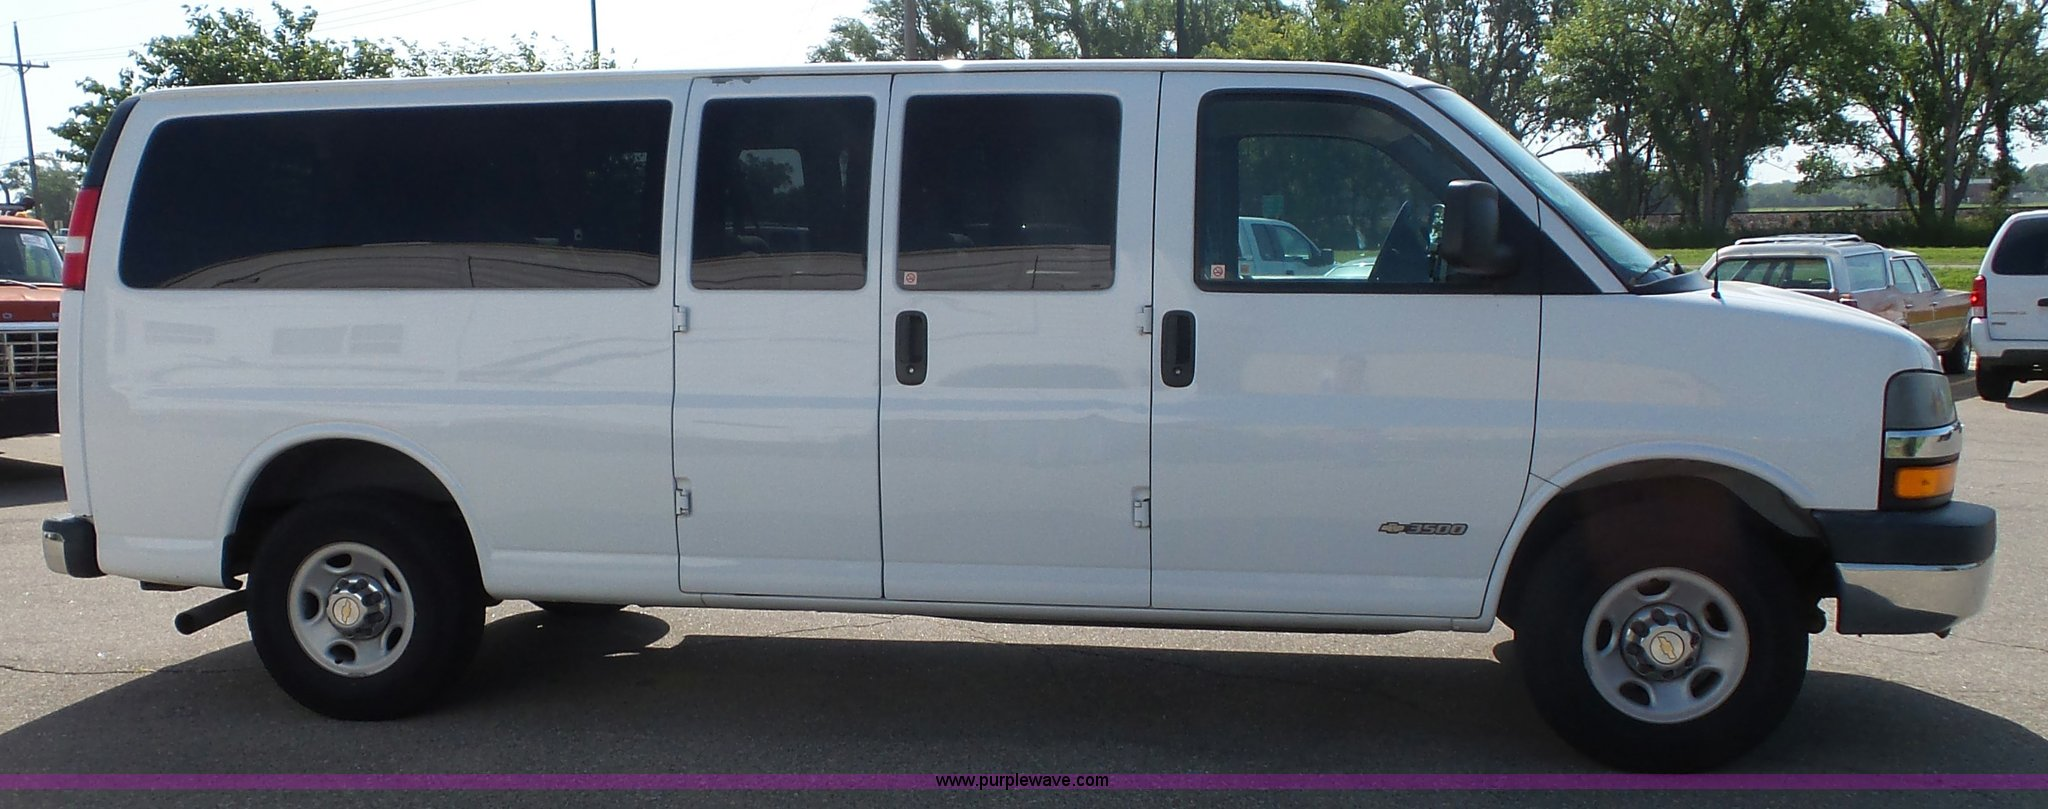 All Chevy 2005 chevrolet express : 2005 Chevrolet Express 3500 Extended van | Item J4843 | SOLD...